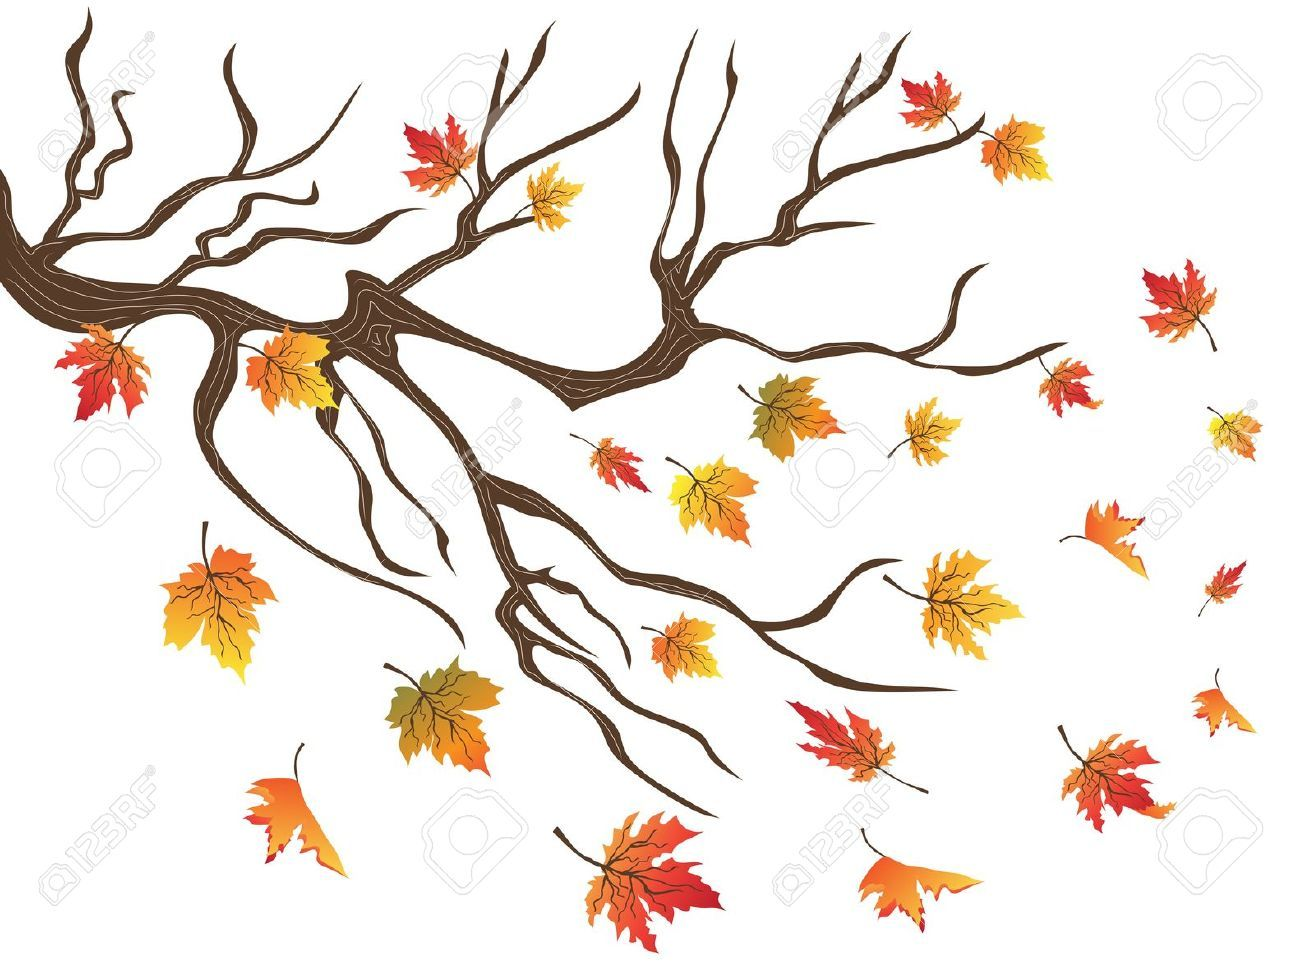 leaves blowing clip art.